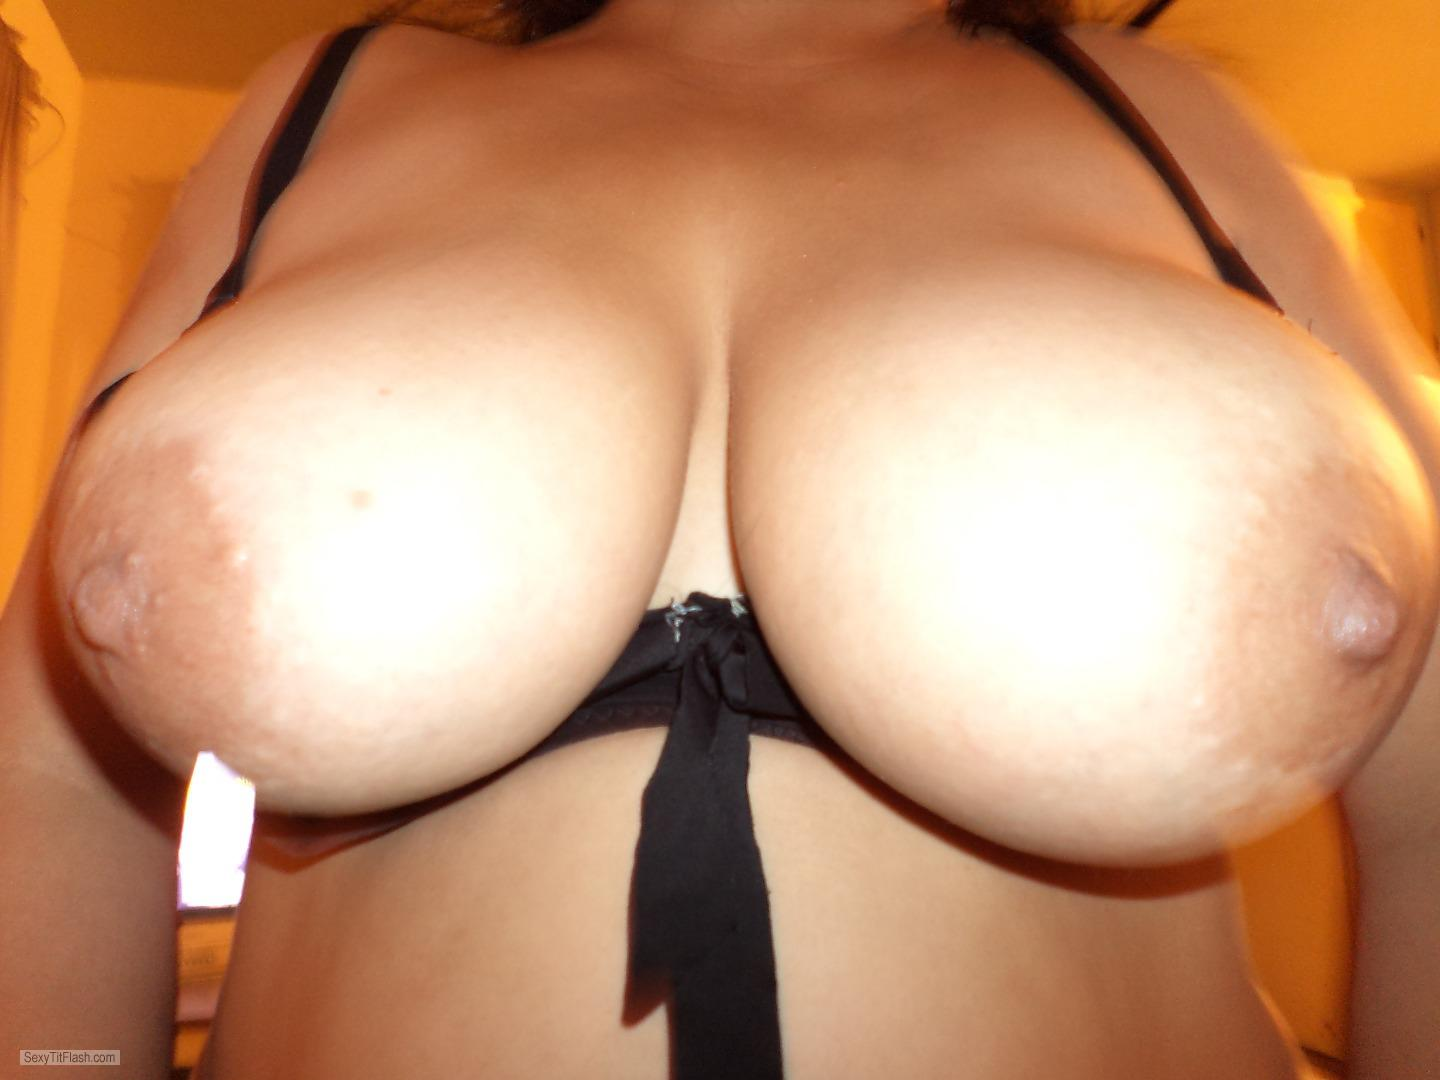 Extremely big Tits Of My Girlfriend Topless My GF DDD's